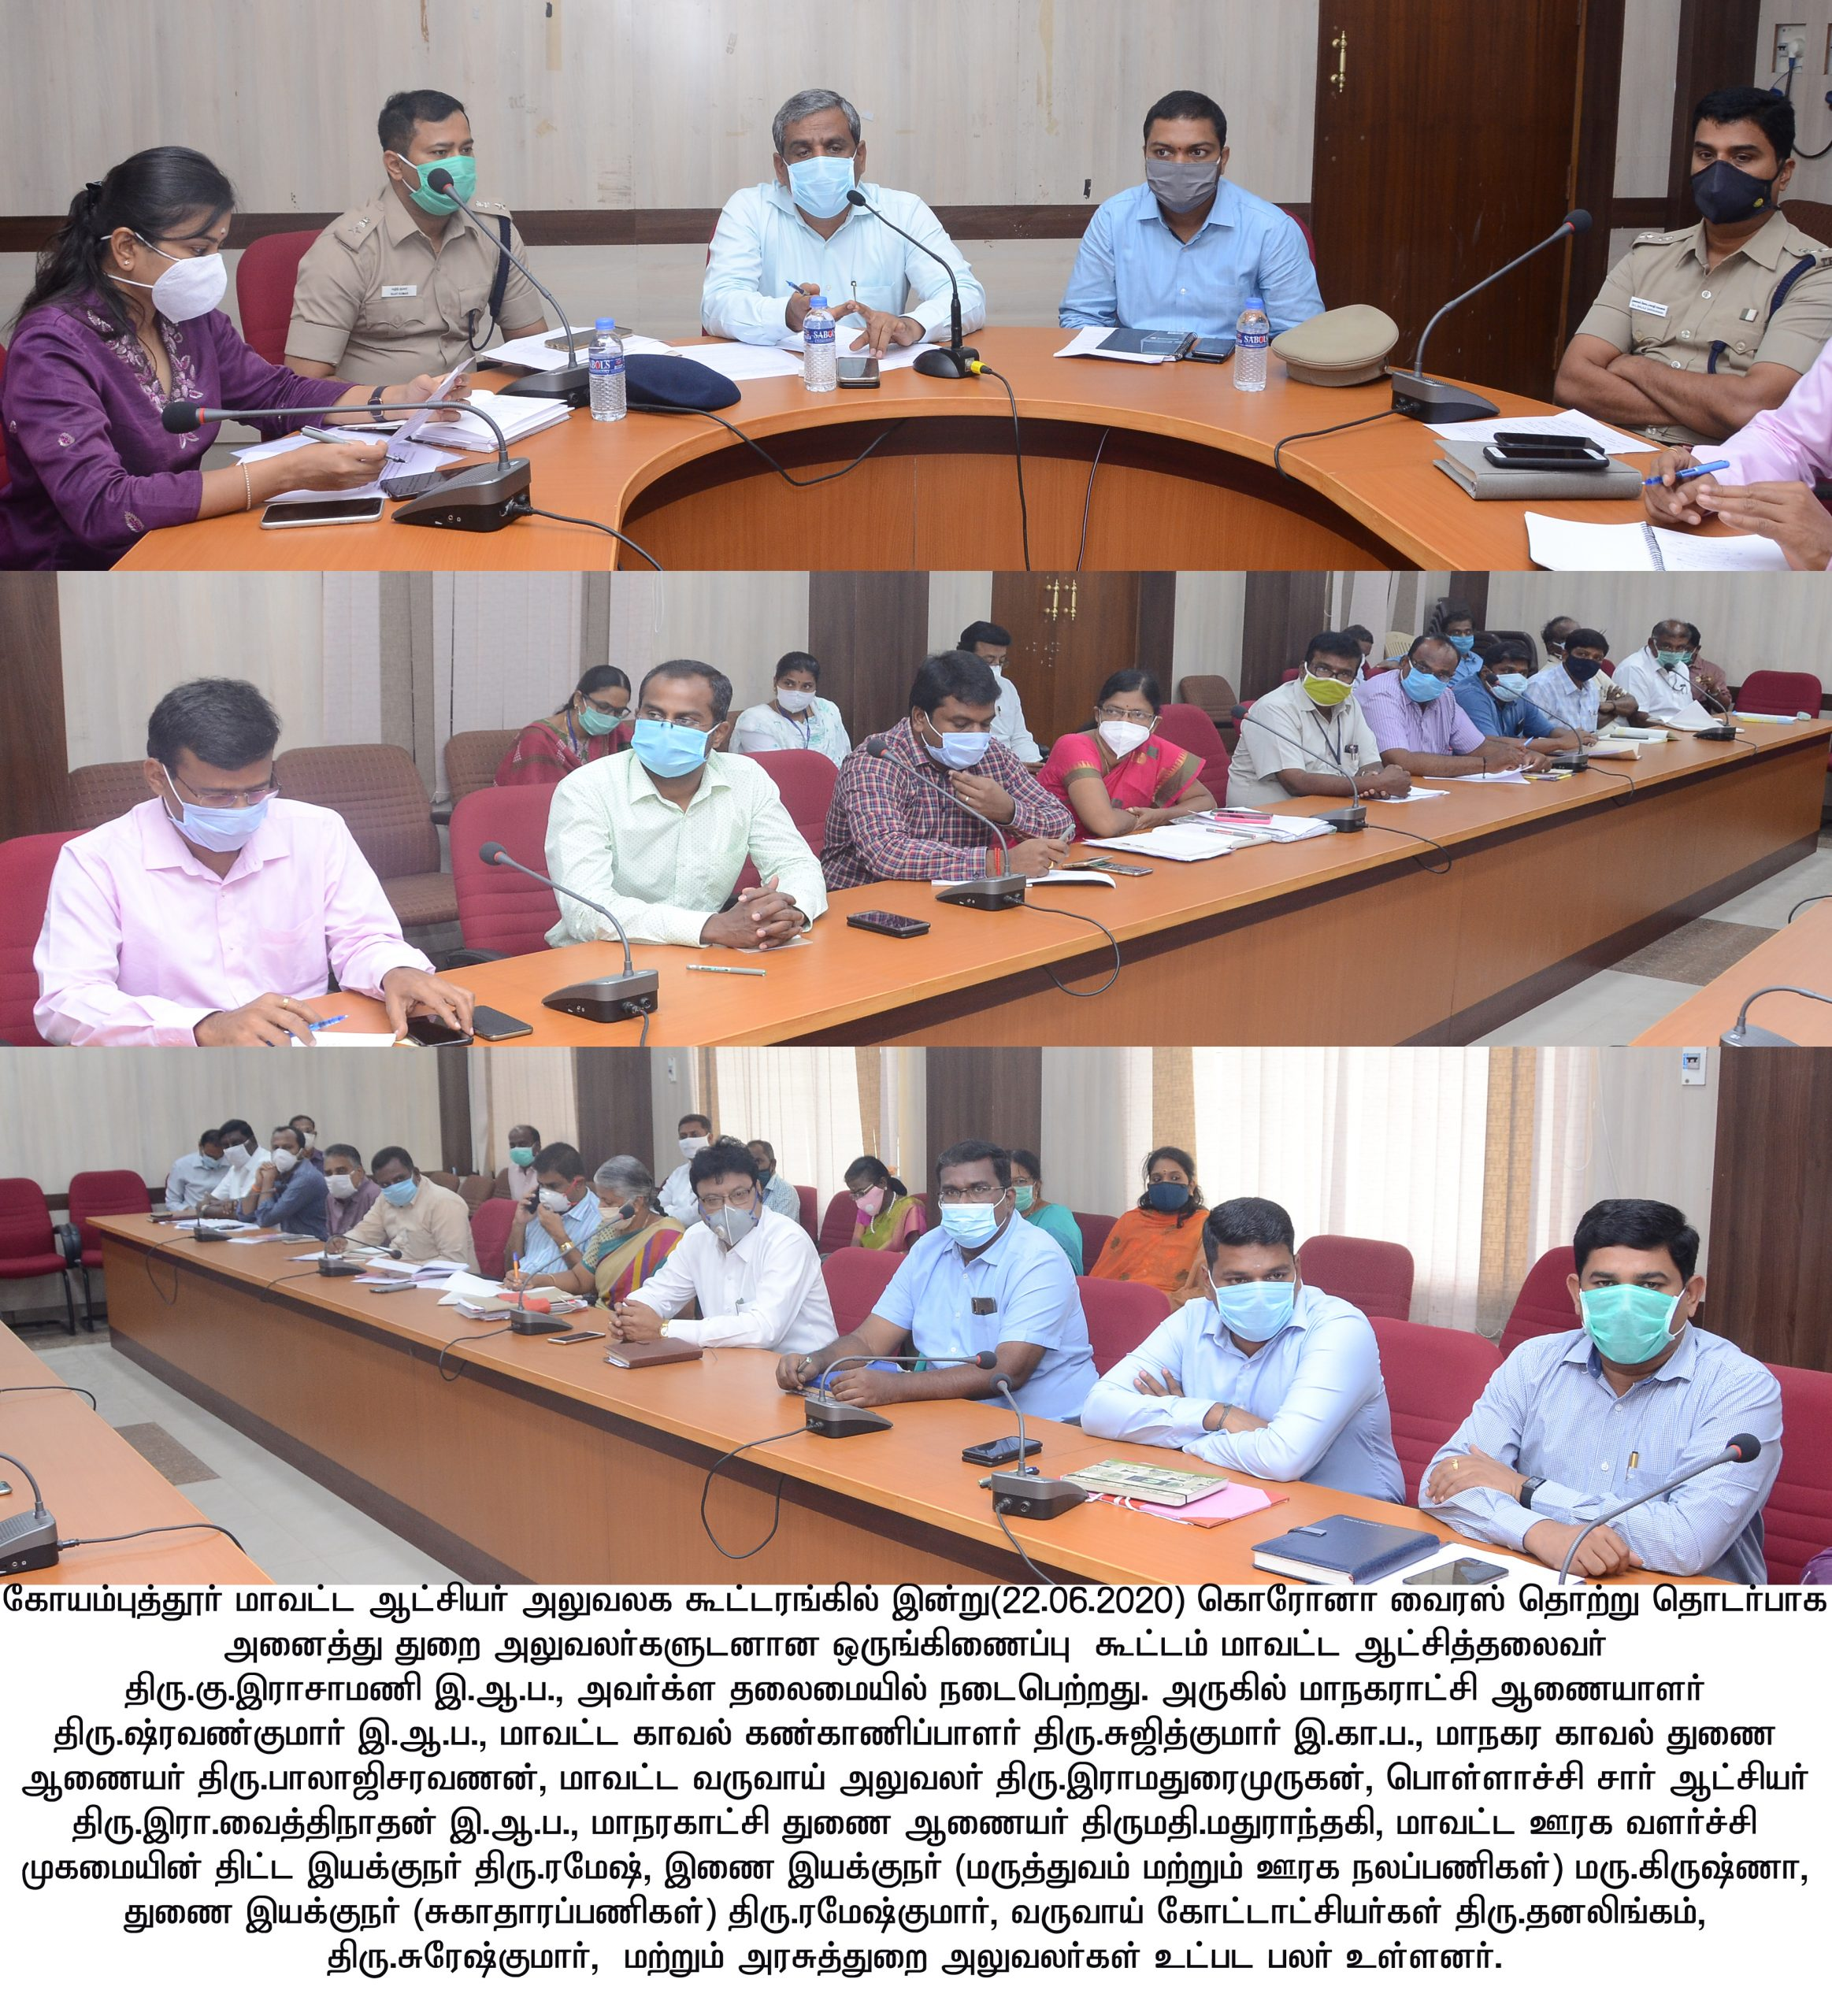 Corona Virus Prevention coordination meeting held